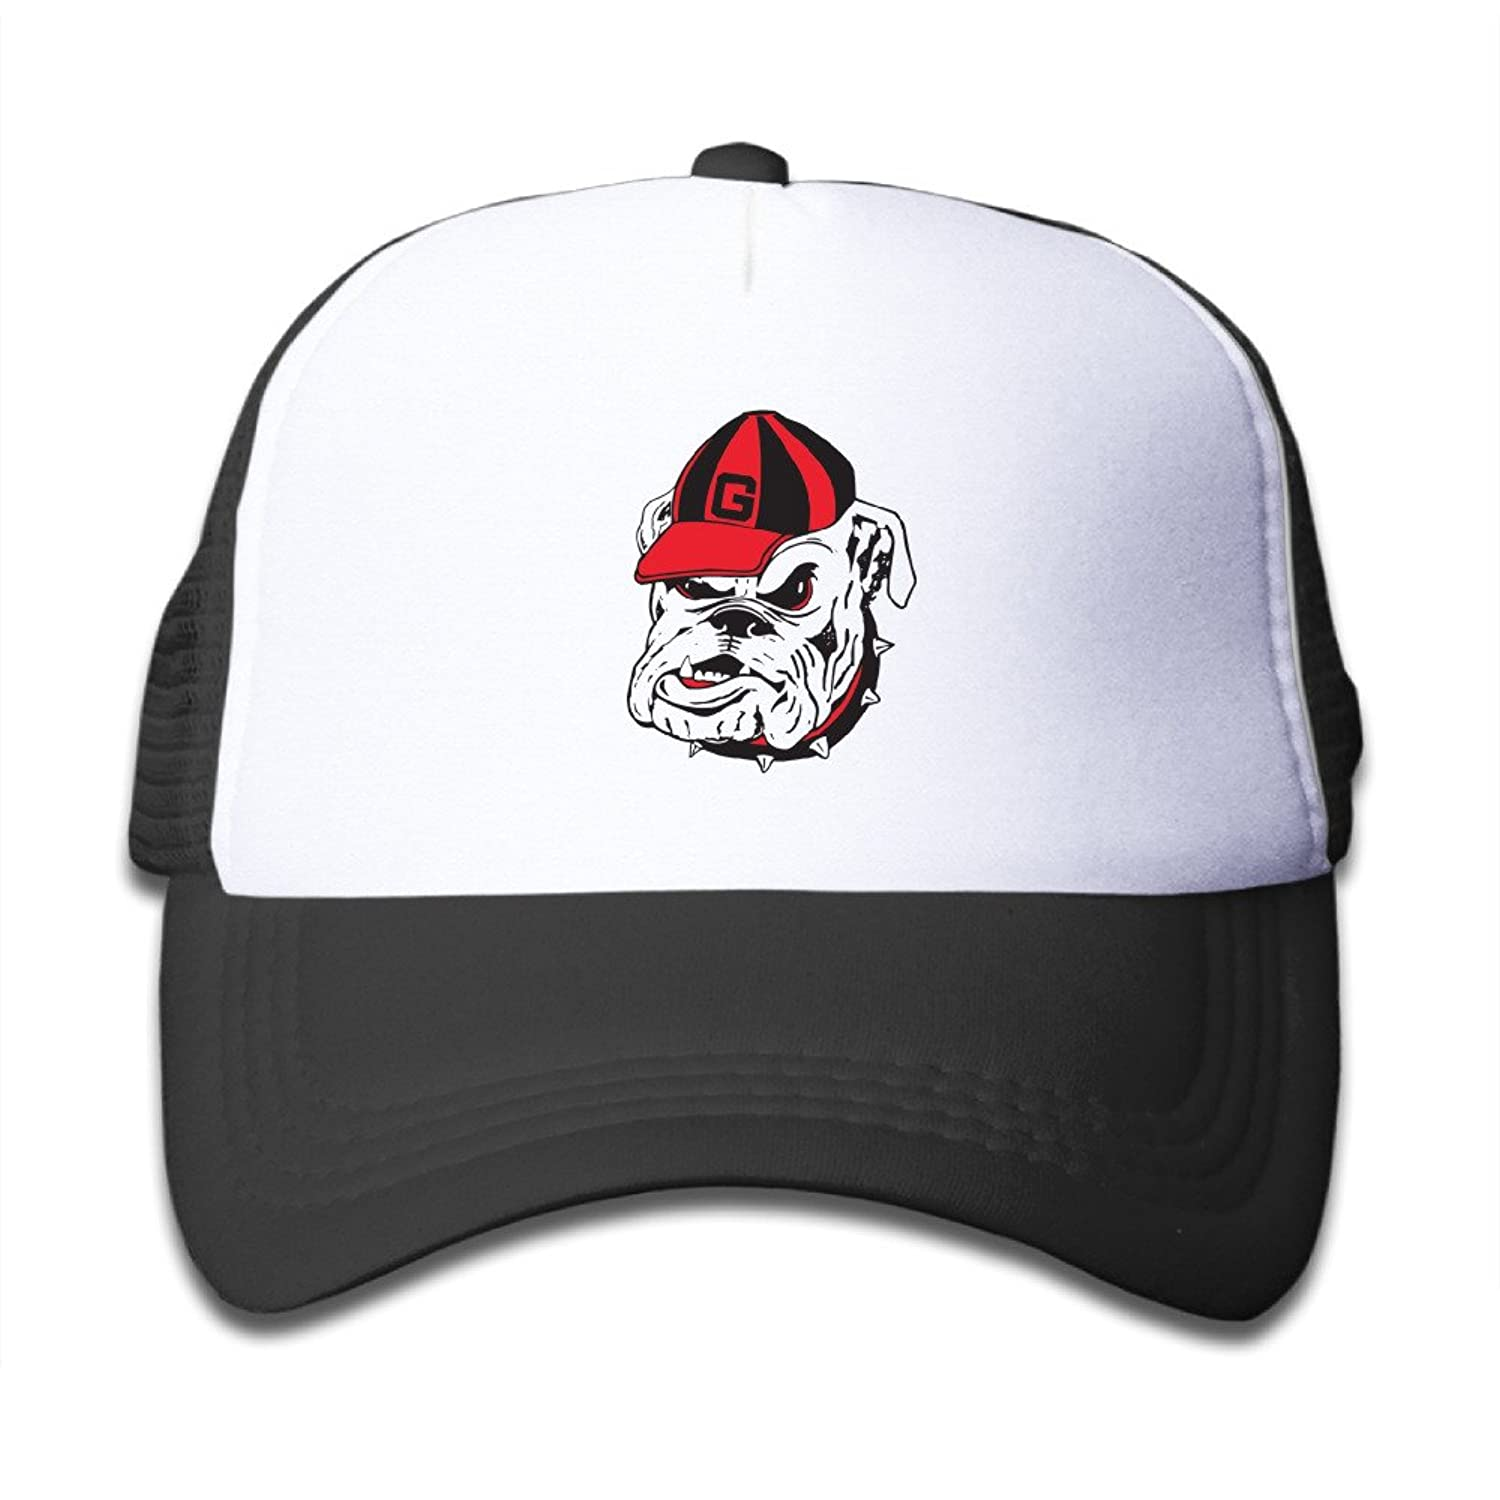 KIDDOS Youth Toddler Kids Adjustable Hat - University Of Georgia Bulldogs Bulldog Outdoor Hat Cap Black